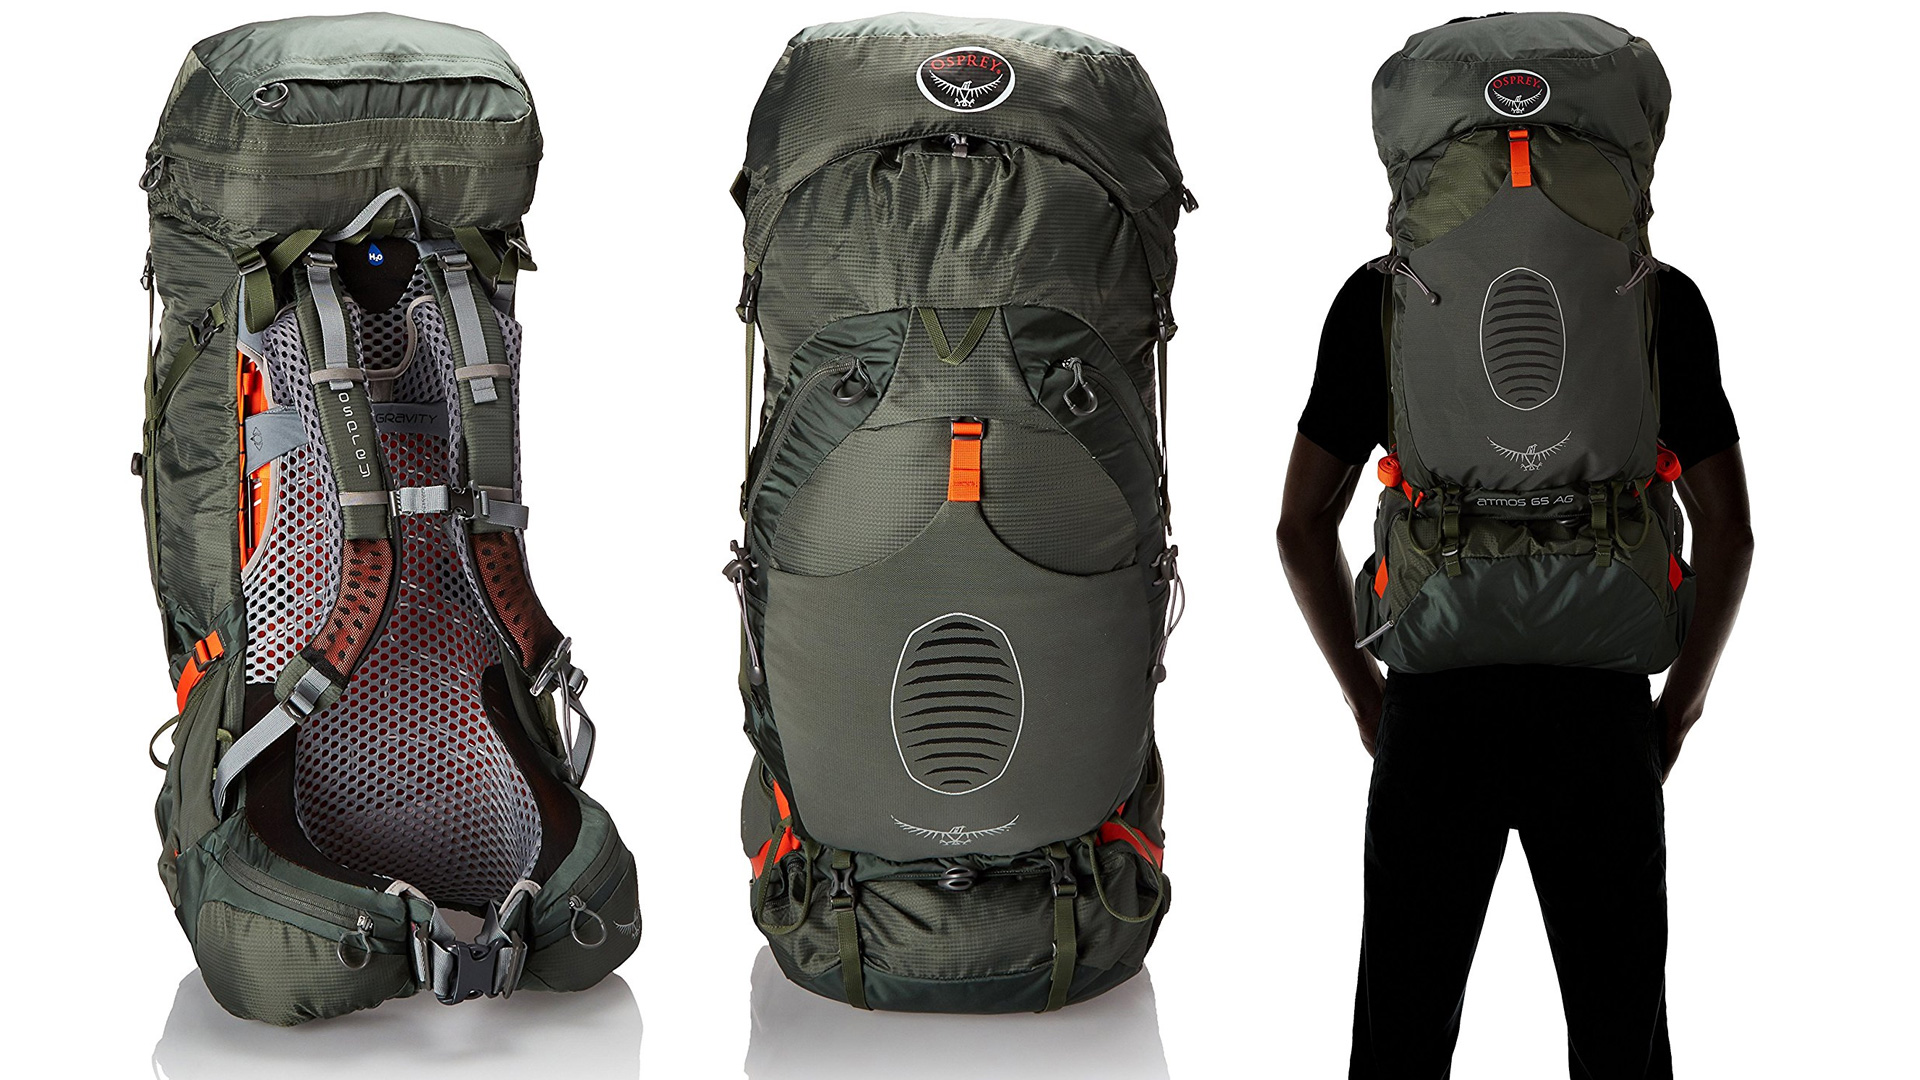 Carry it all in Osprey's Atmos AG 65 Pack for $180 (Reg. $260+)